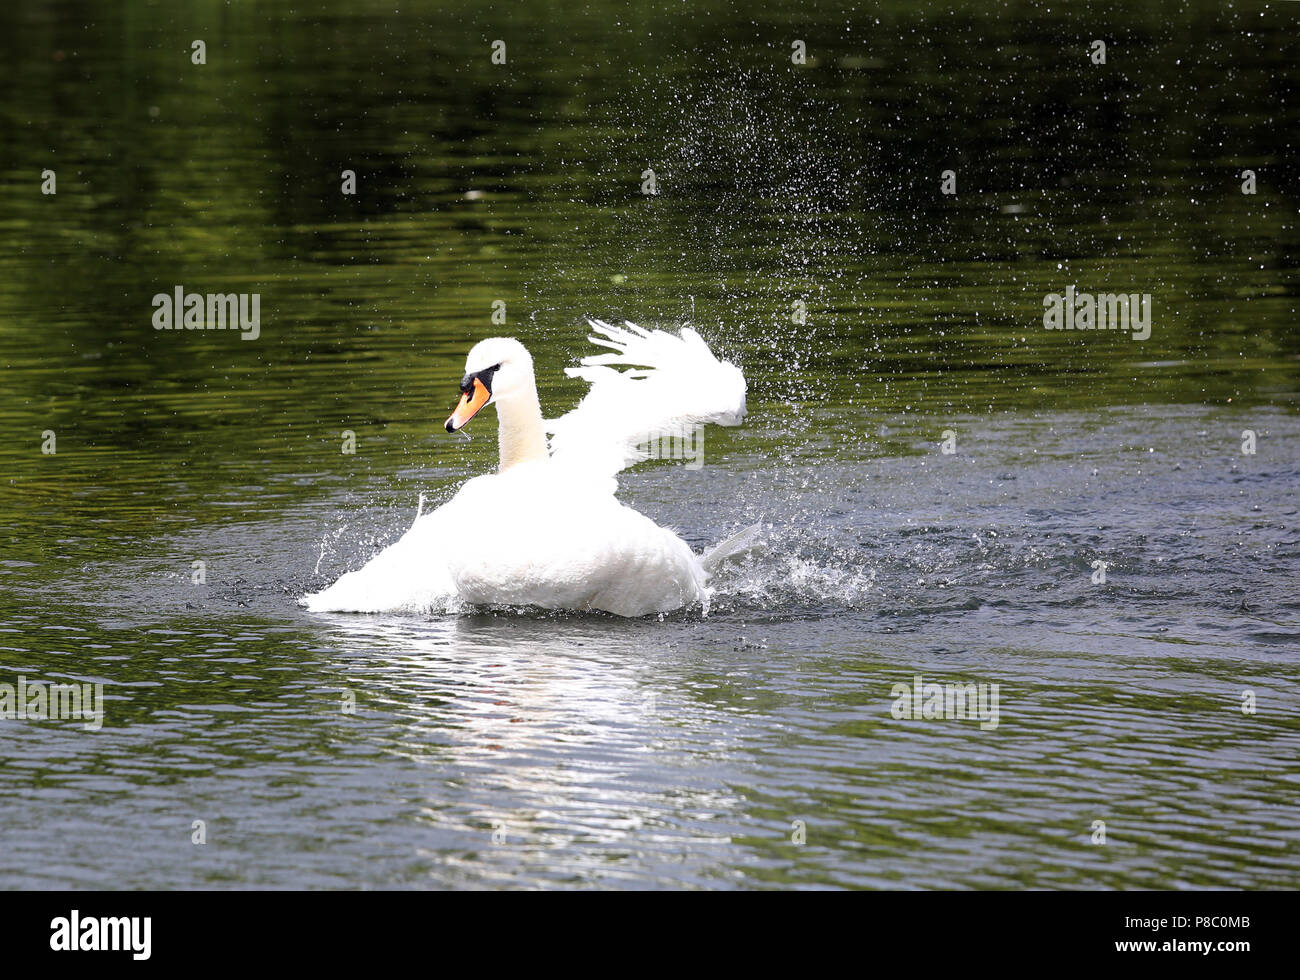 Berlin, Germany, Hoeckerschwan beating in the water with the wings - Stock Image